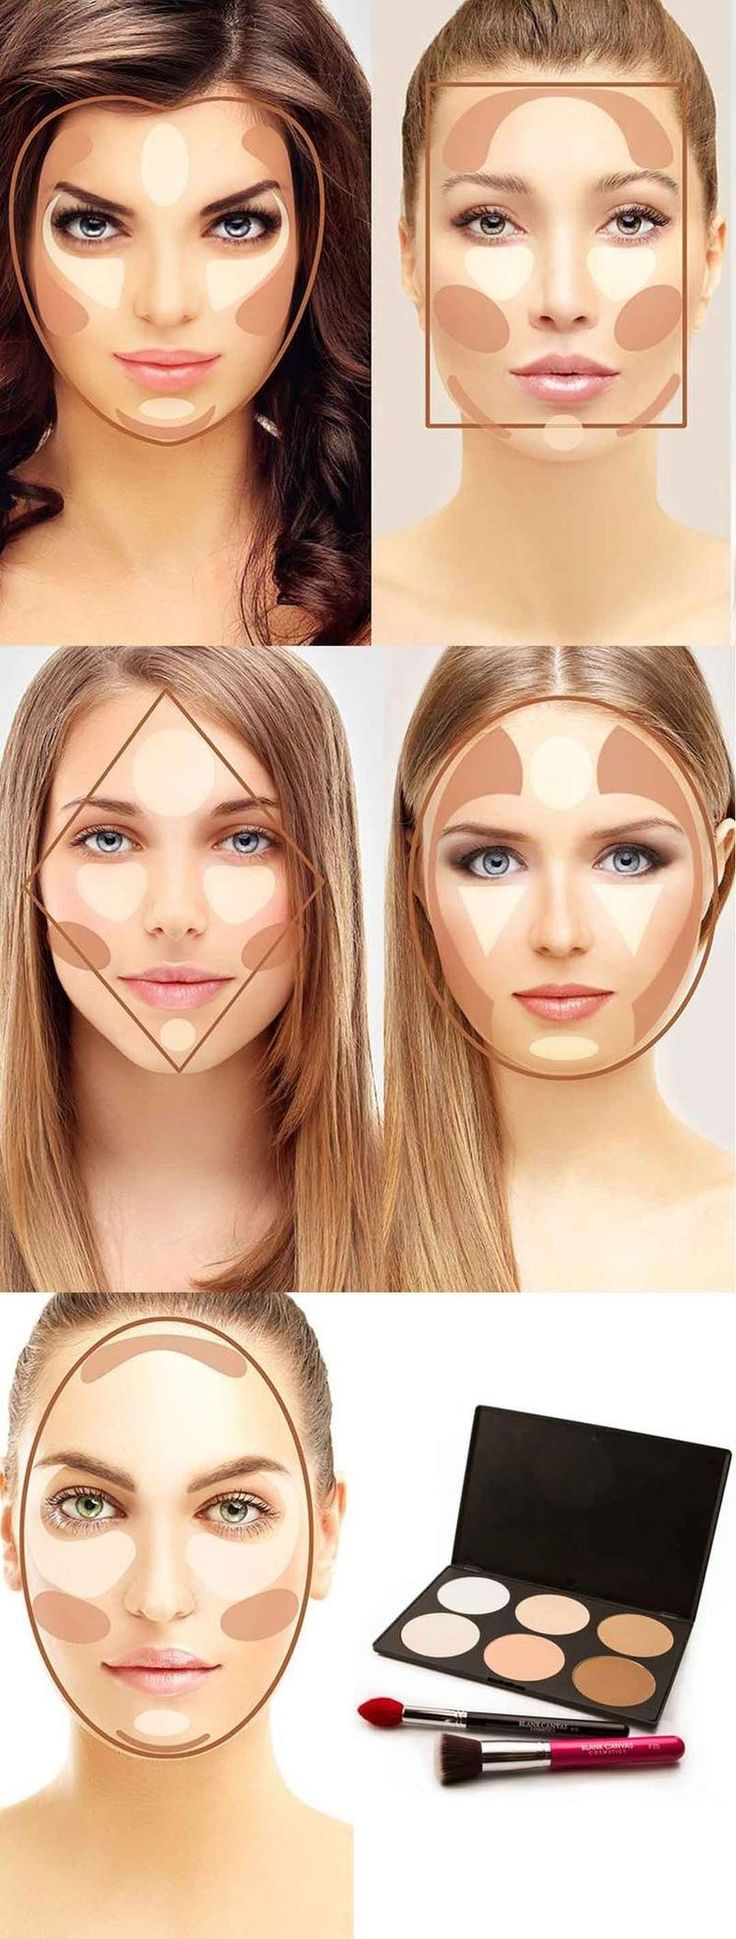 How to Contour to your face shape Follow us for more makeup tips. Her Box is a monthly subscription box catered to women during your periods. Discover products that will relieve stress and discomfort. Treat Yourself. Check out www.theHerBox.com for a 3 month subscription box.